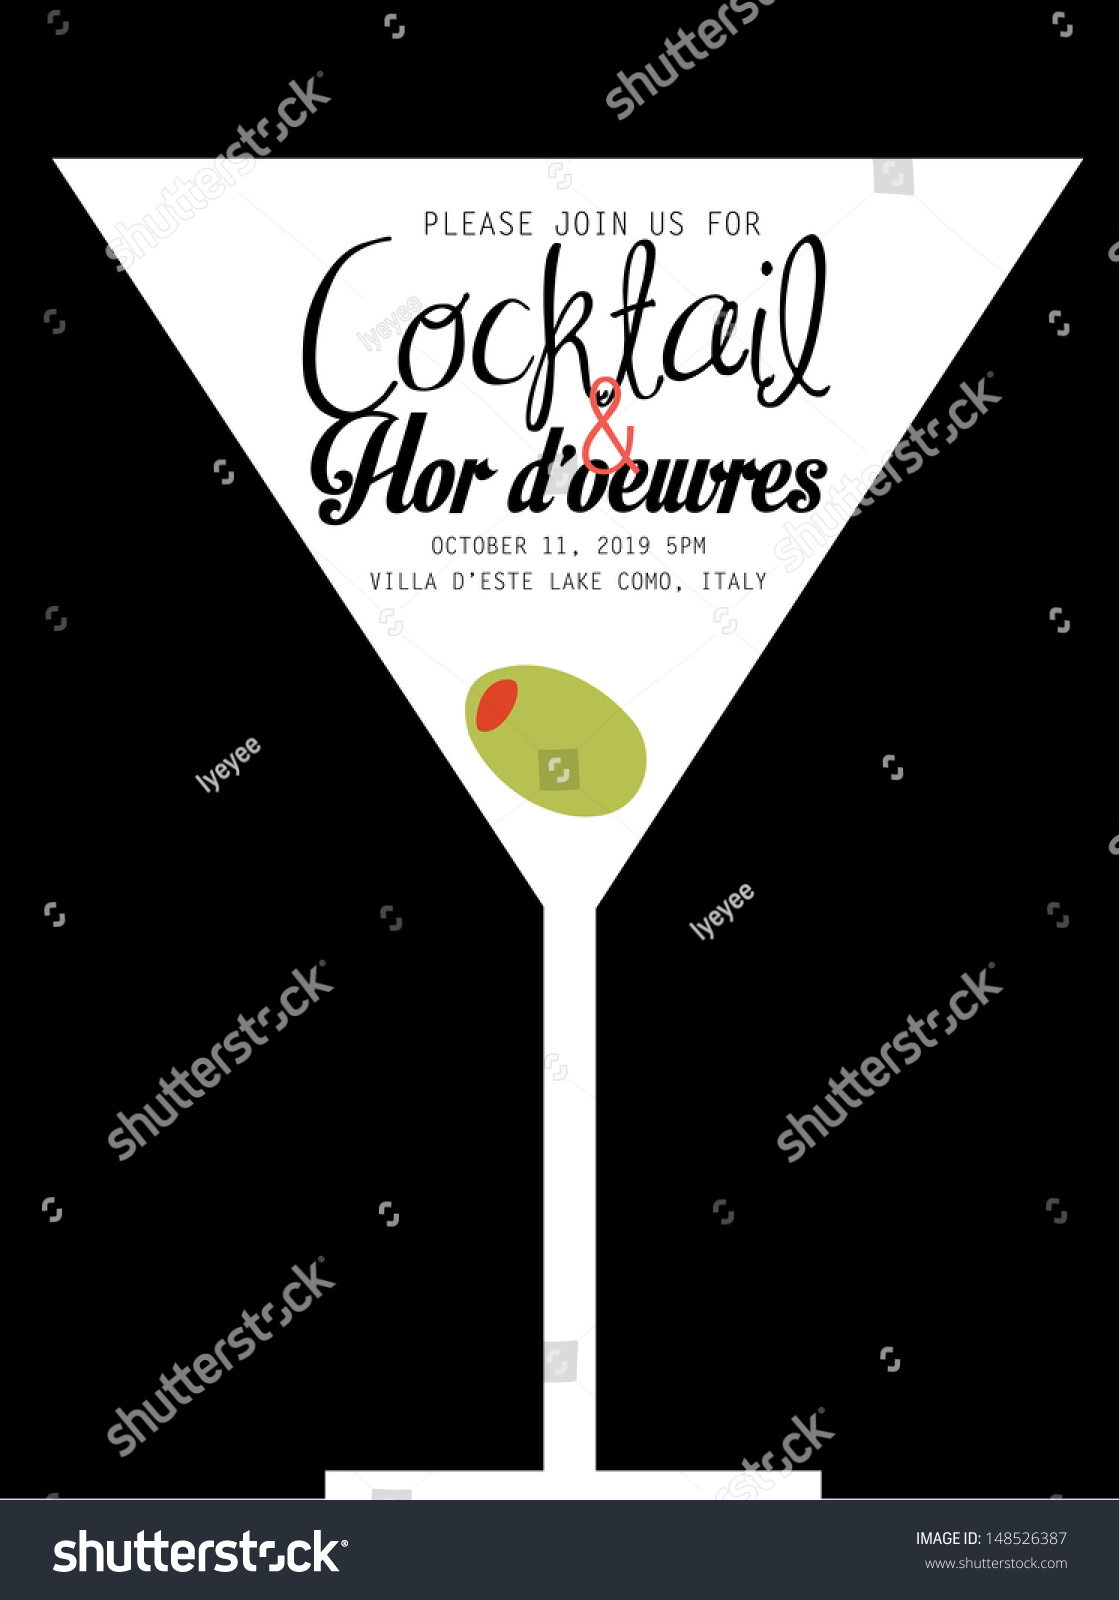 Superb Cocktail Party Invitation Templates Free Part - 11: Cocktail Party Invitation Template Vector/illustration